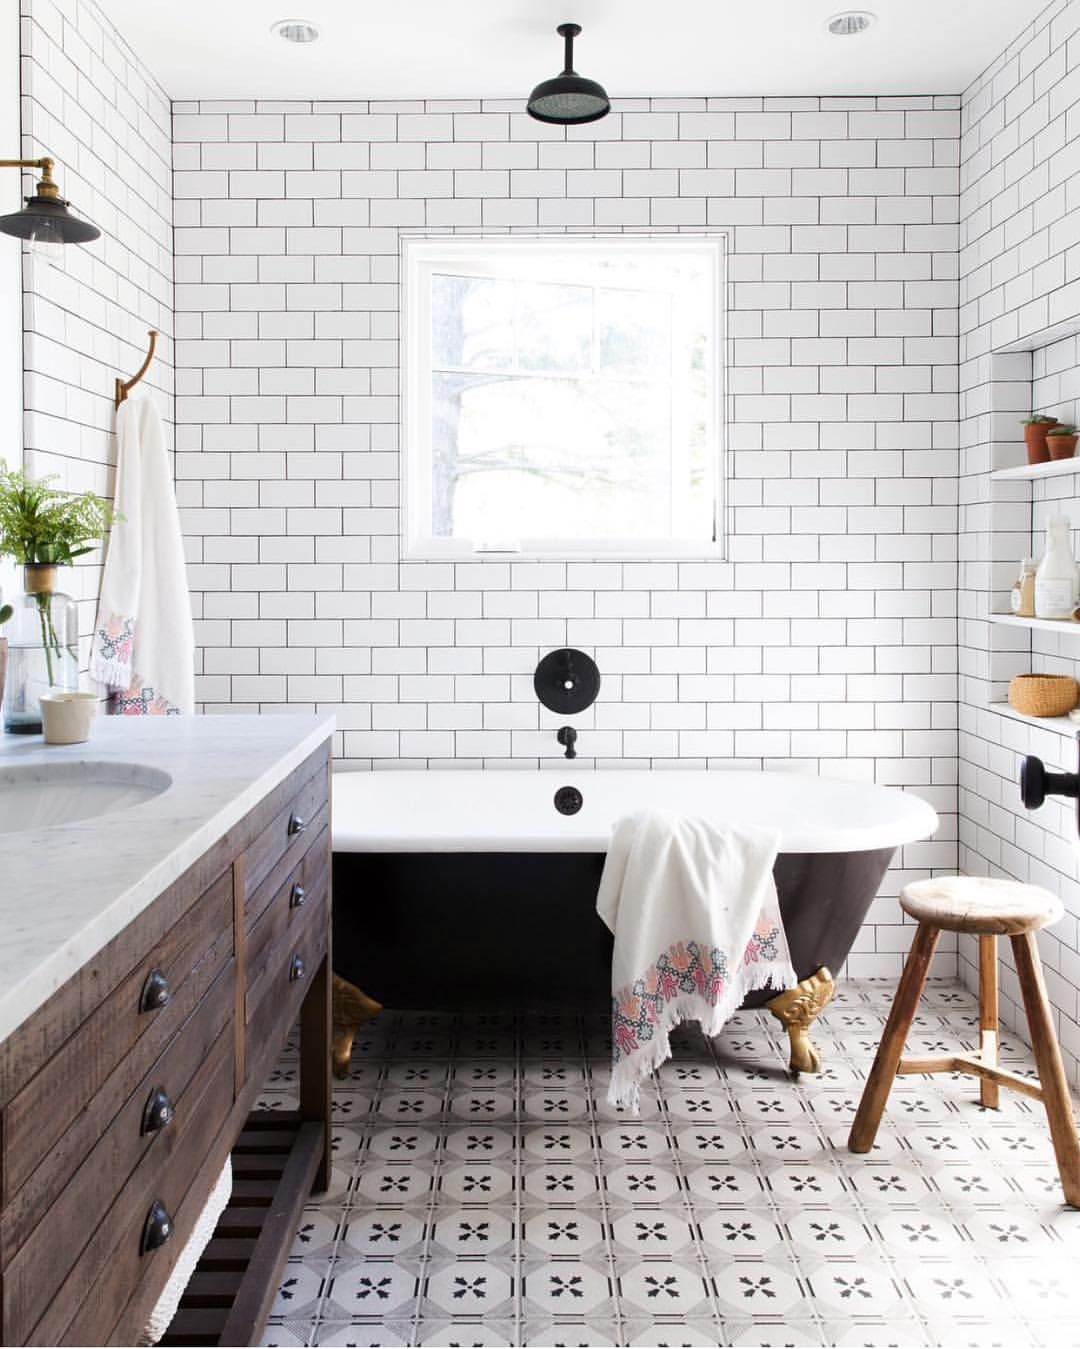 This Is Rustic Modern Farmhouse Bathroom With White